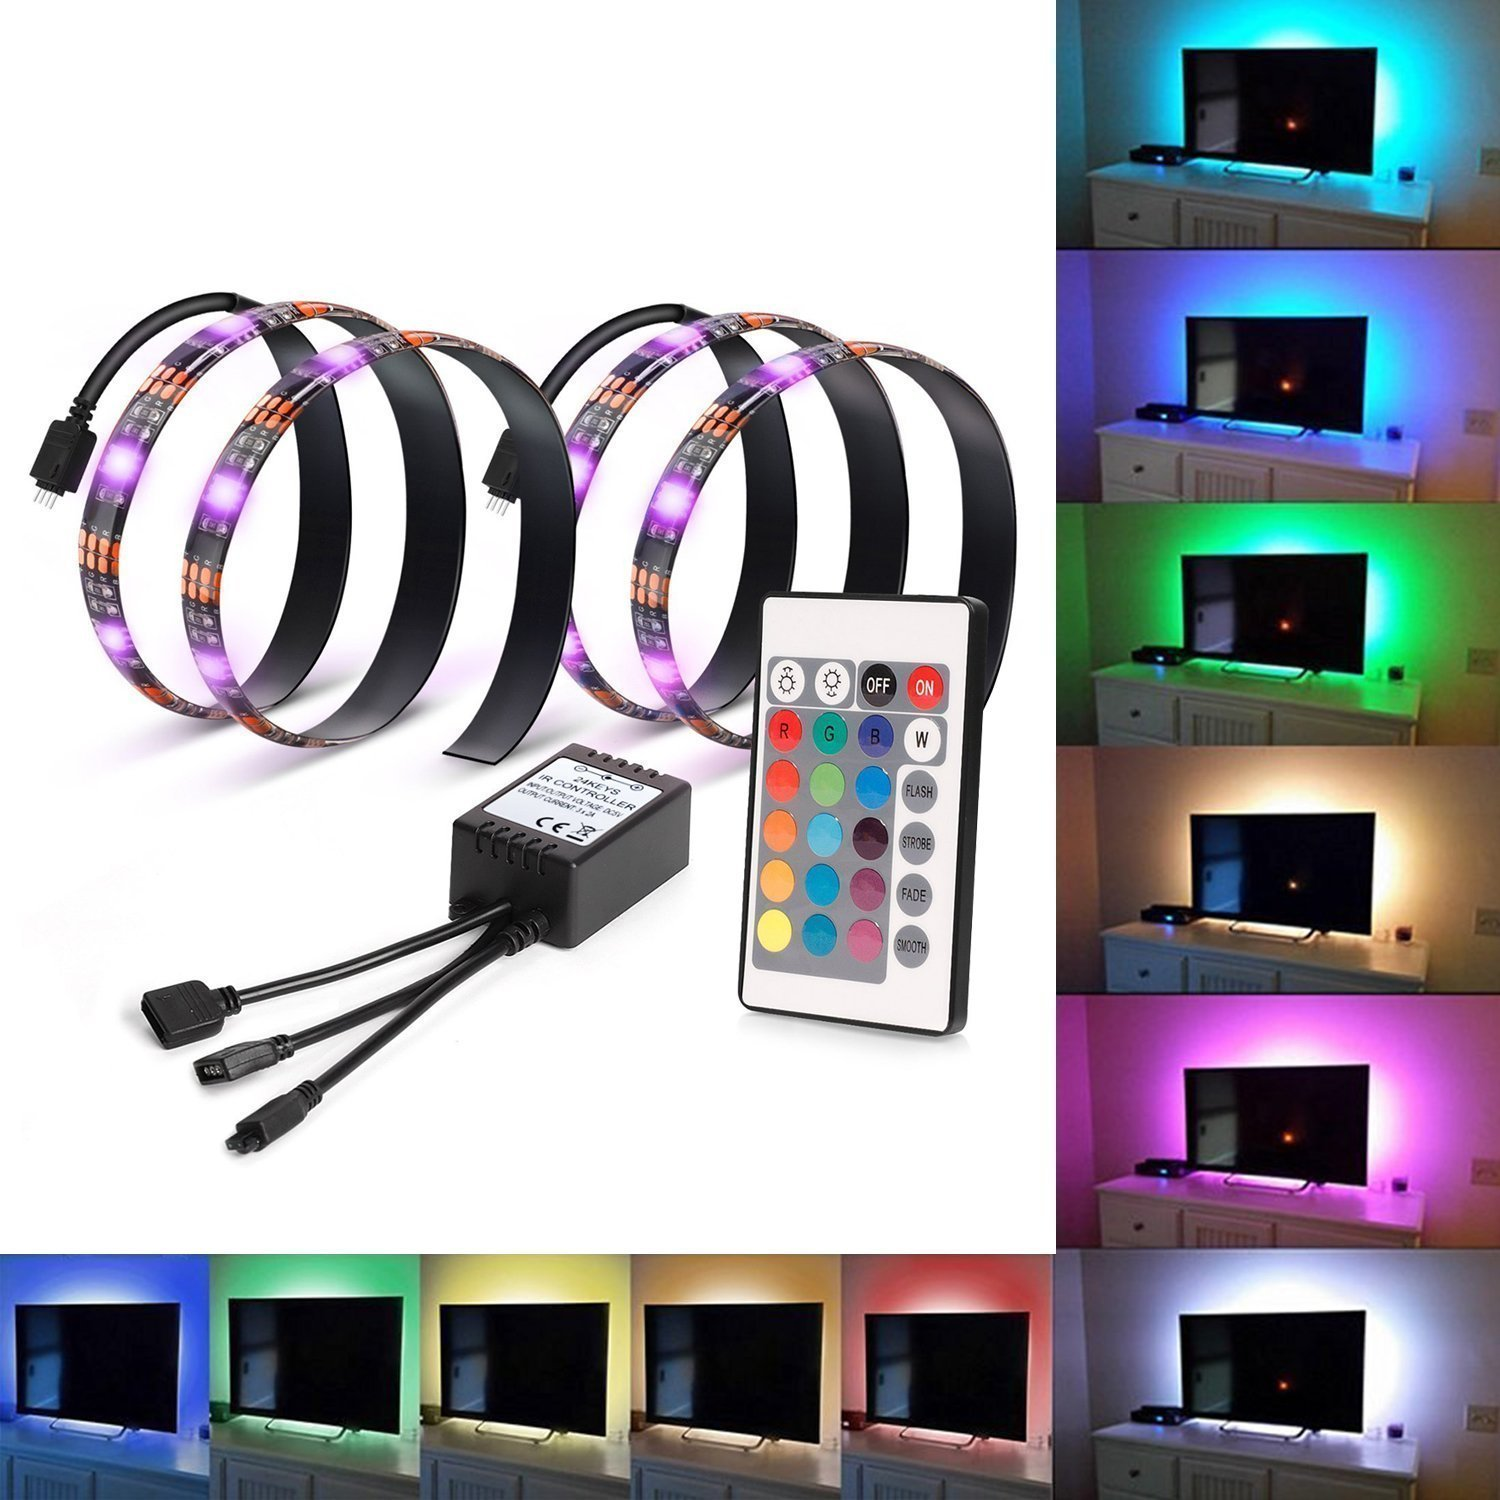 RGB TV Backlight Kit USB LED Strip Light Neon Accent Bias Lighting with 24keys Remote Controller for 24 to 65inch HDTV LCD Desktop PC Monitor (Set of 2)